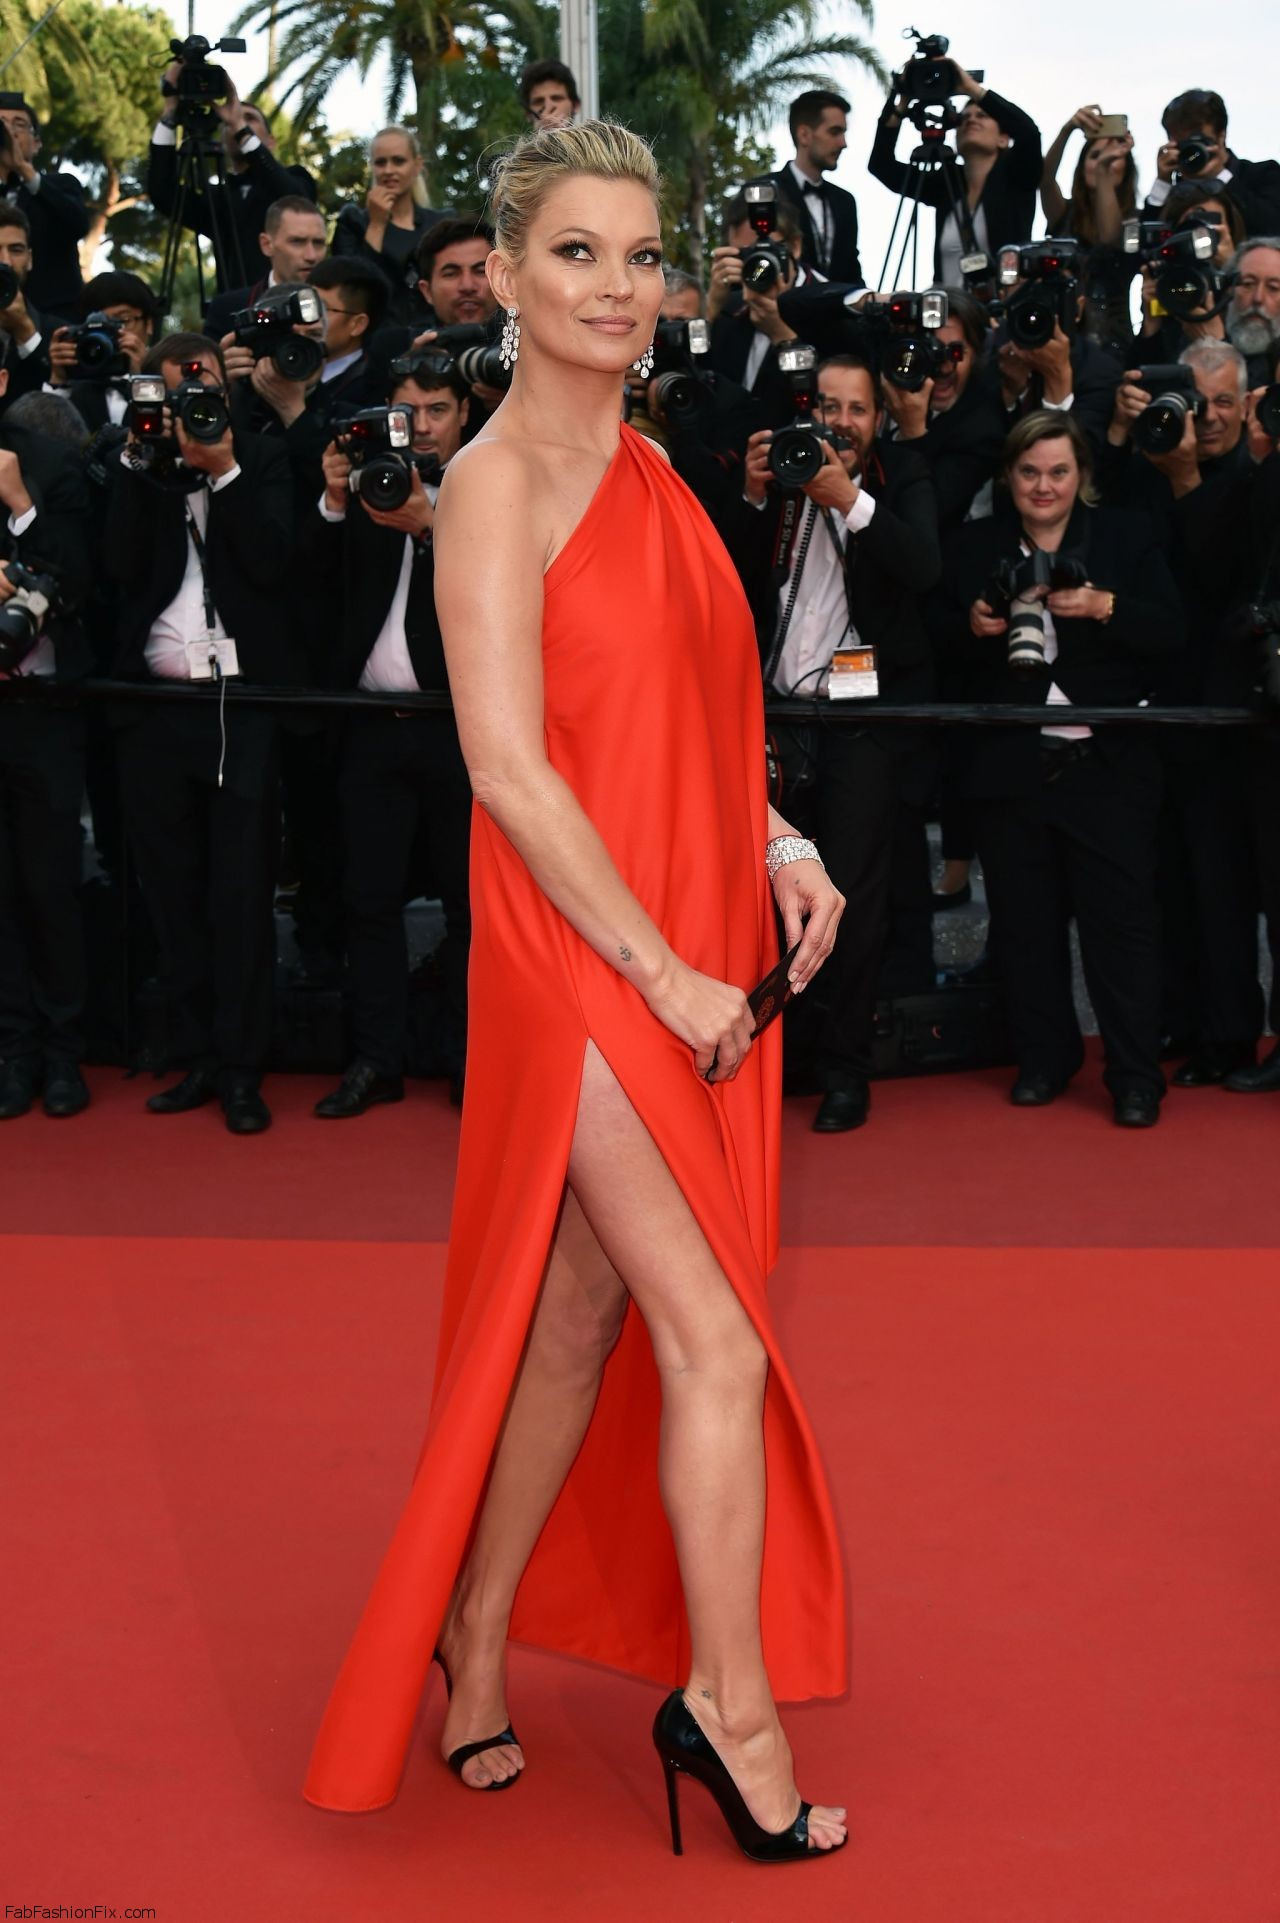 kate-moss-the-loving-premiere-at-69th-cannes-film-festival-5-16-2016-7